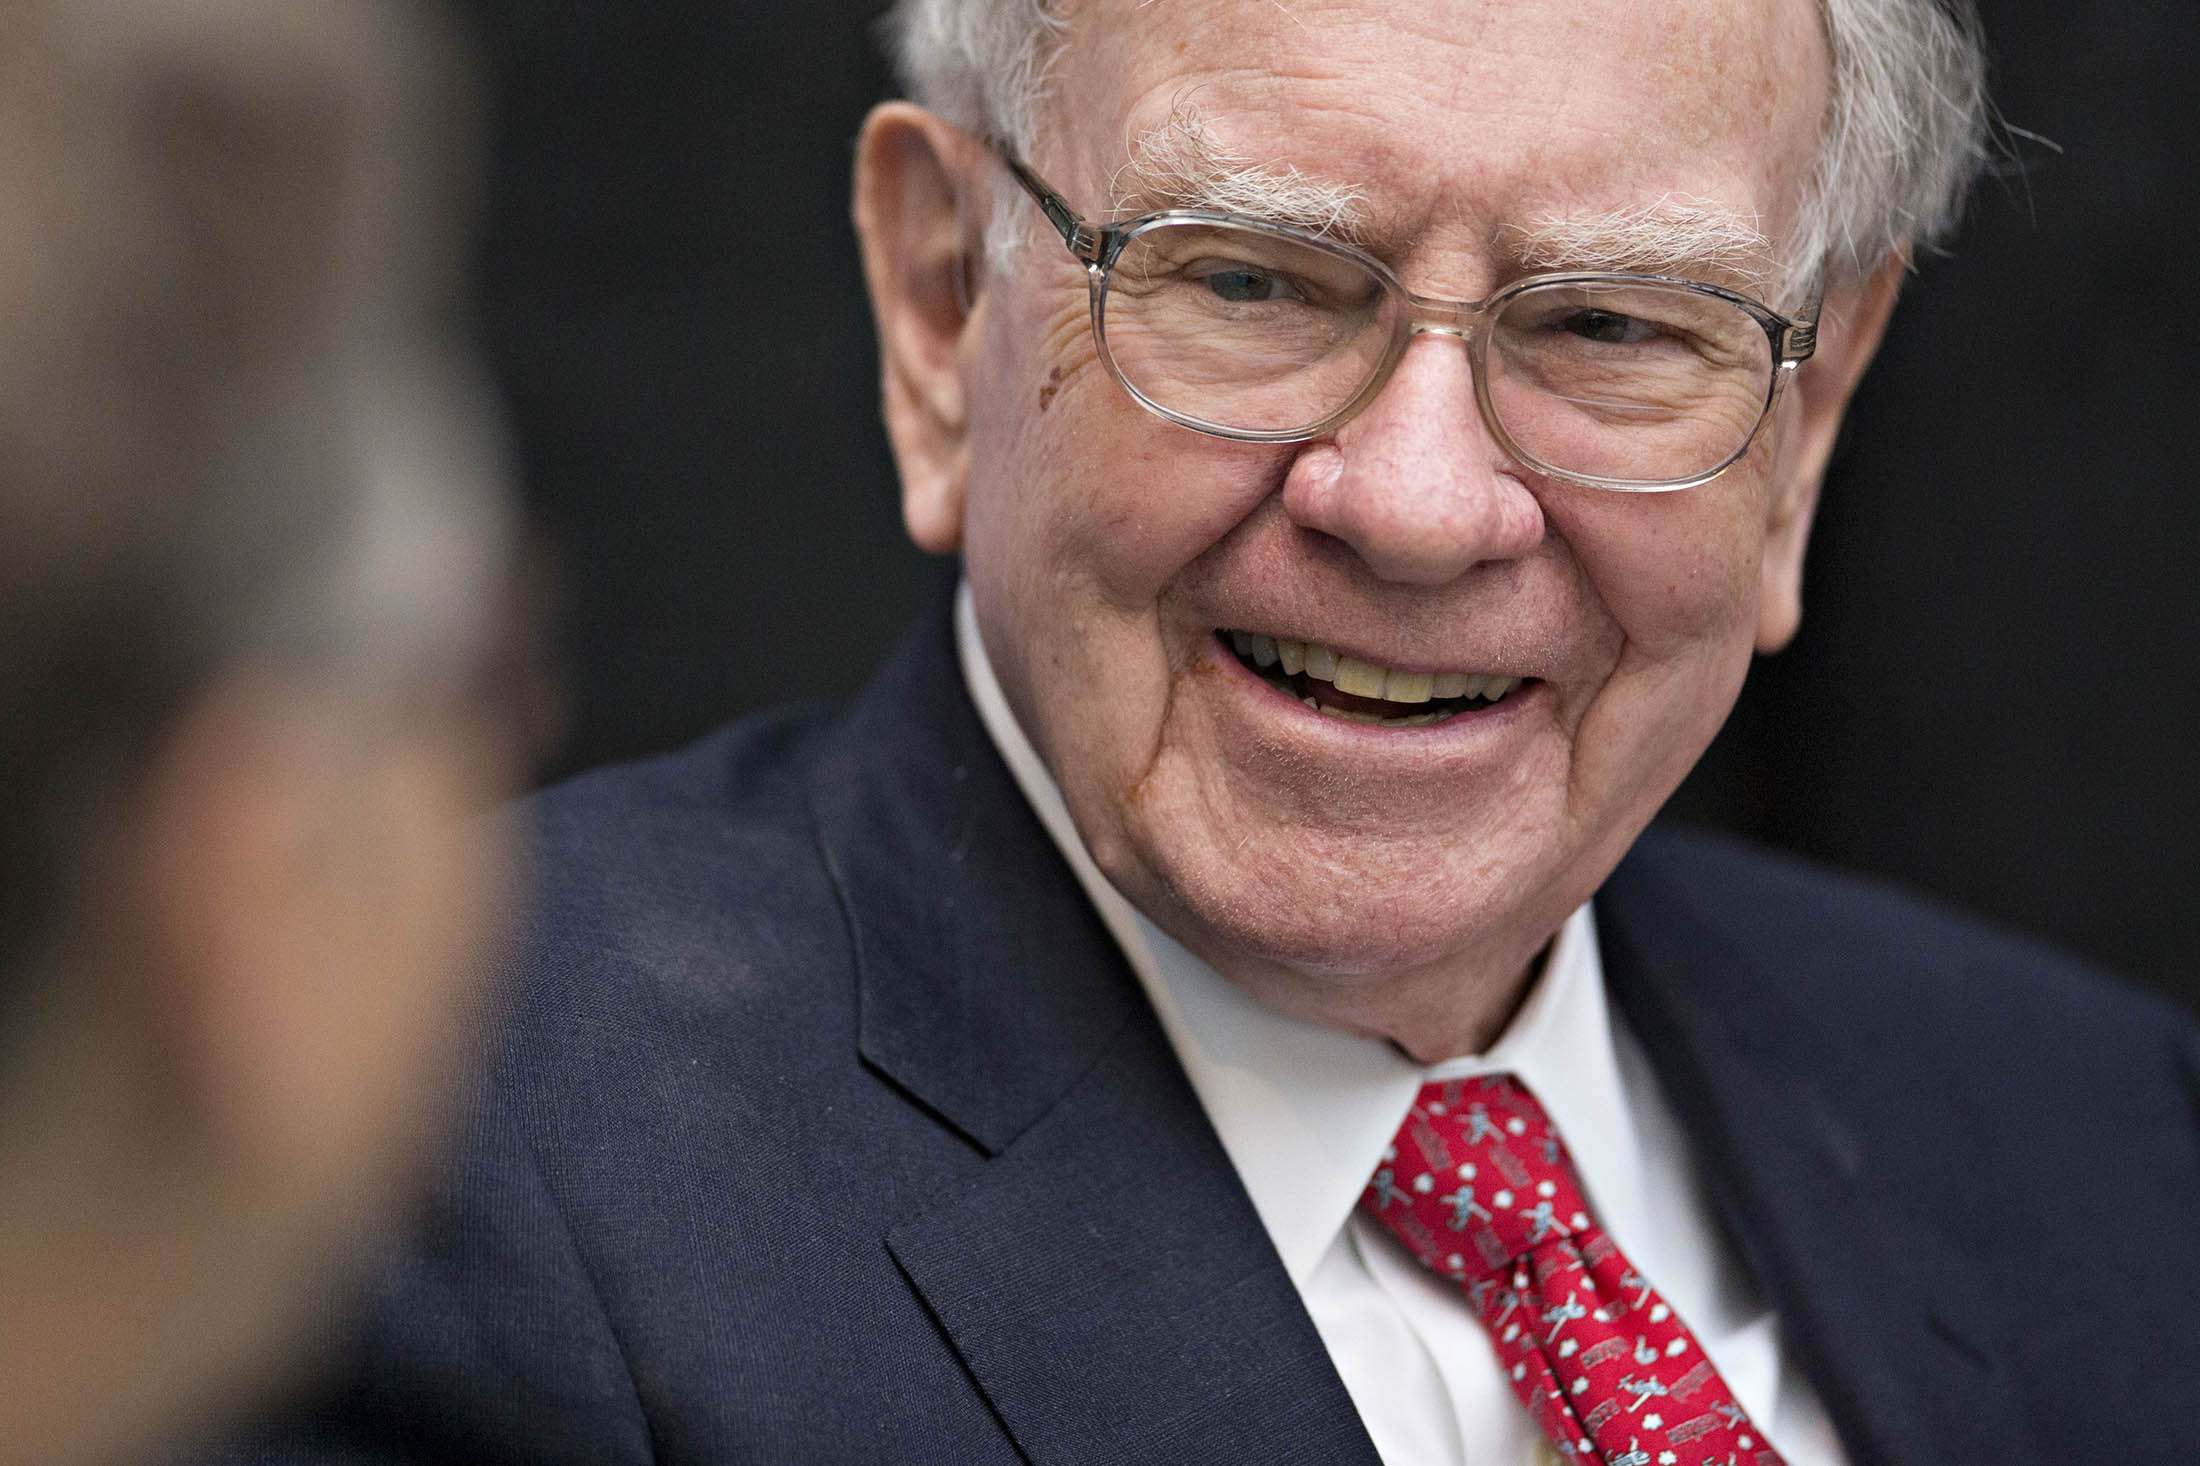 Buffett Gives $2.2 Billion to Charity That Embraces Failure - Bloomberg